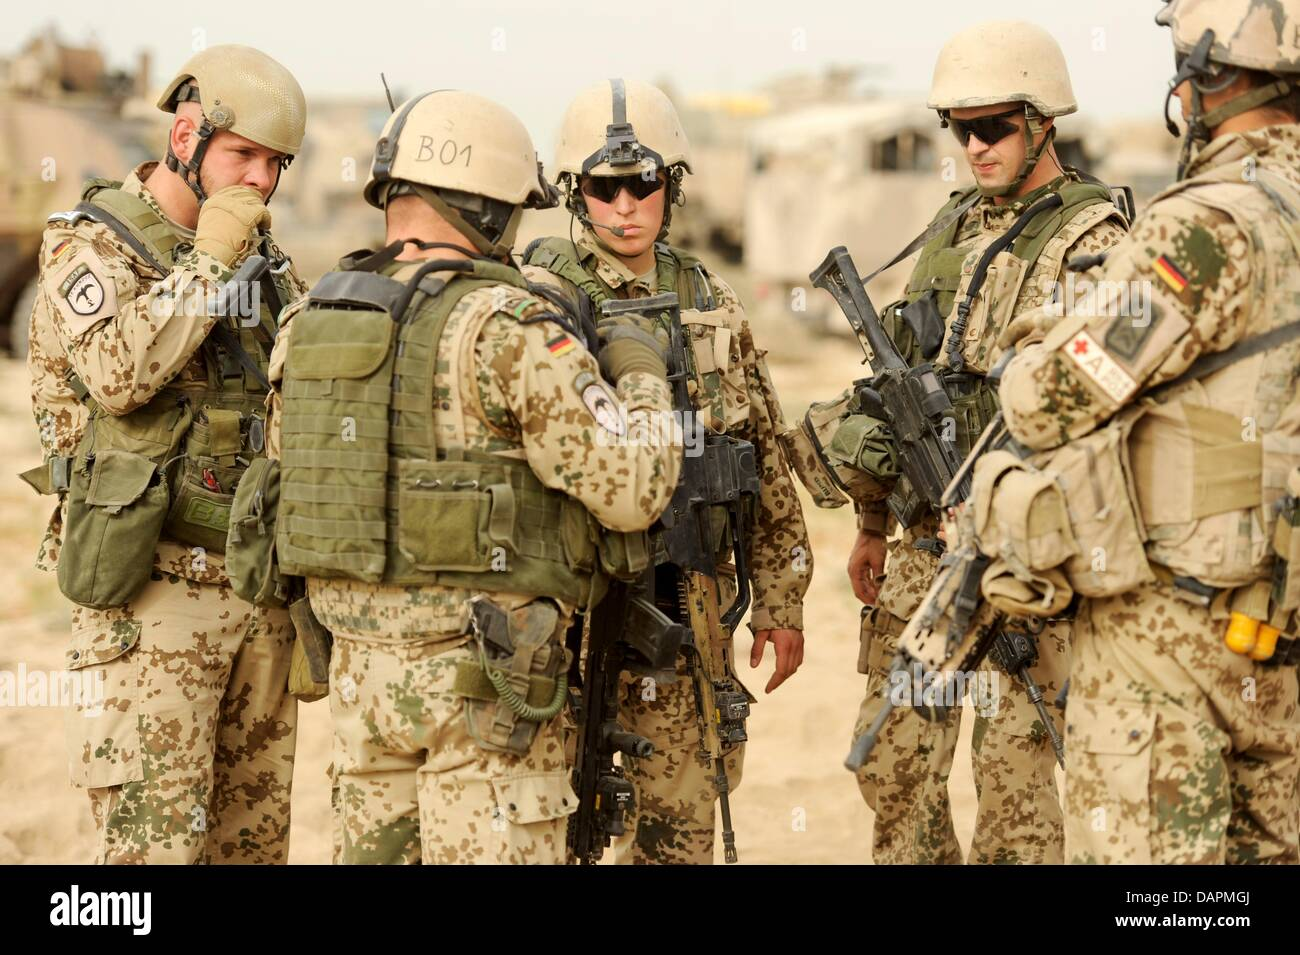 a-group-of-bundeswehr-soldiers-talk-duri